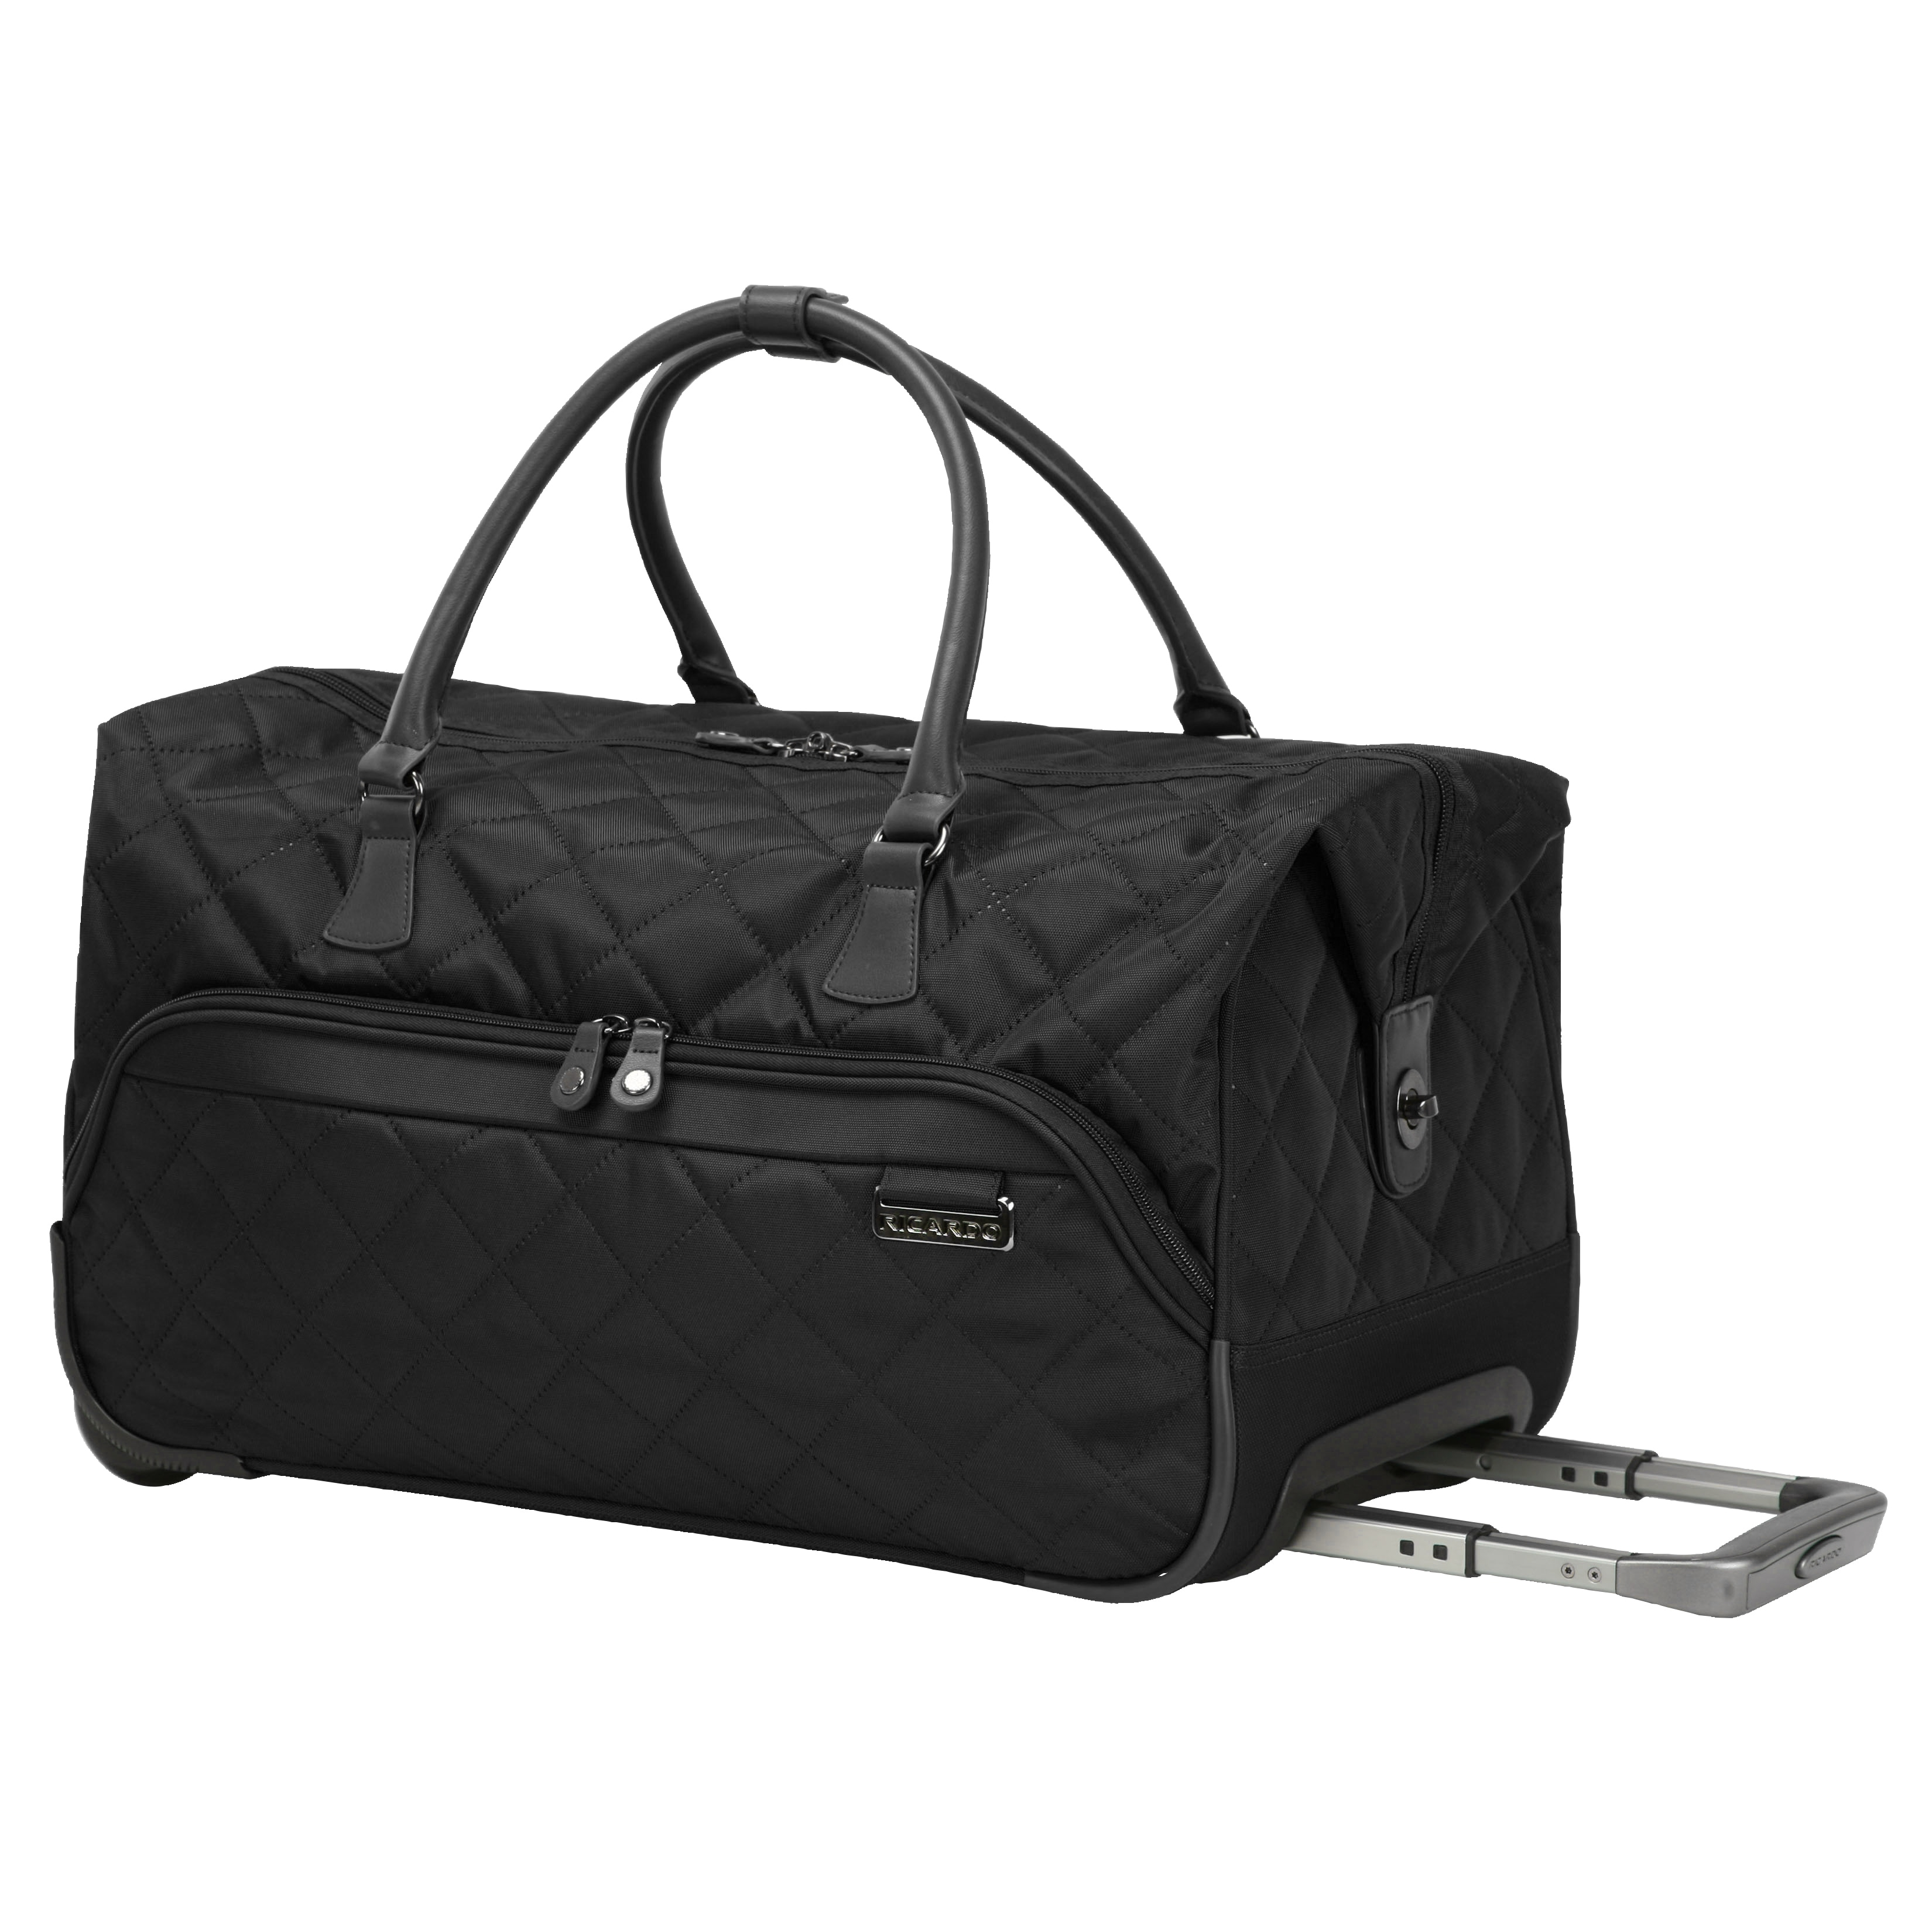 01ab50cf91 Shop Ricardo Beverly Hills Carmel 20-inch Carry-on Rolling City Duffel Bag  - Free Shipping Today - Overstock - 11041367